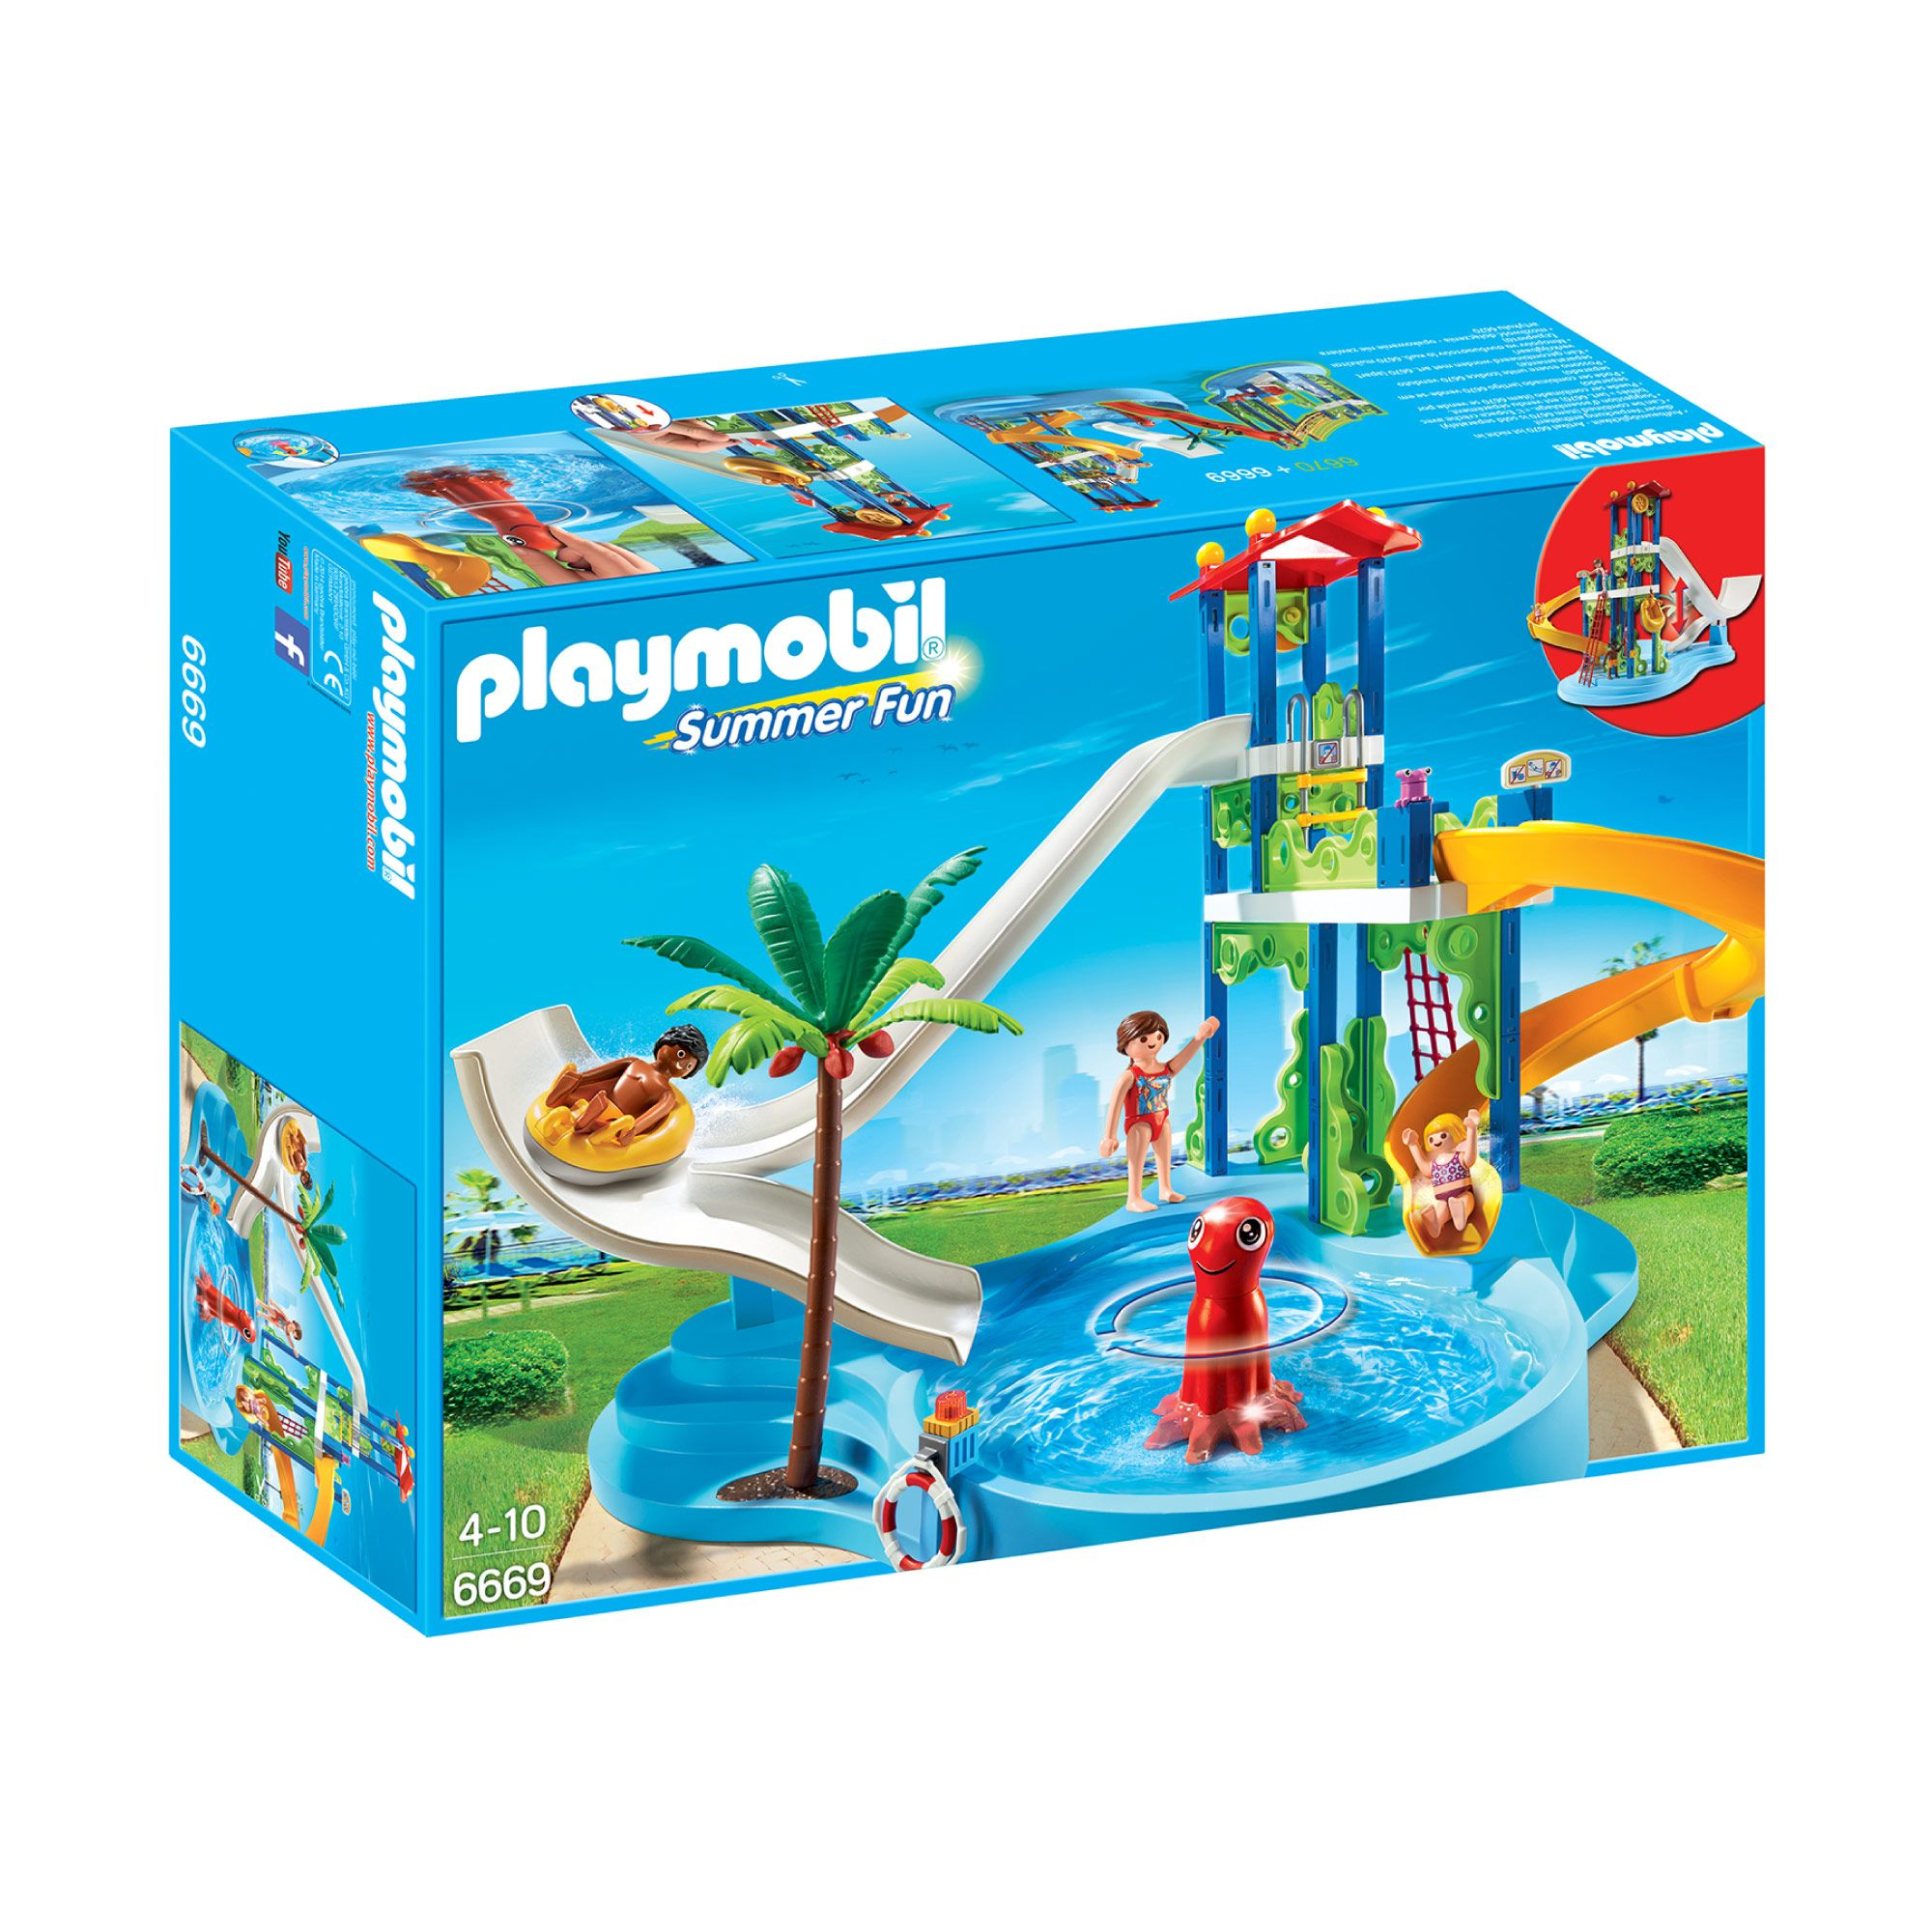 buy cheap playmobil swimming pool compare products prices for best uk deals